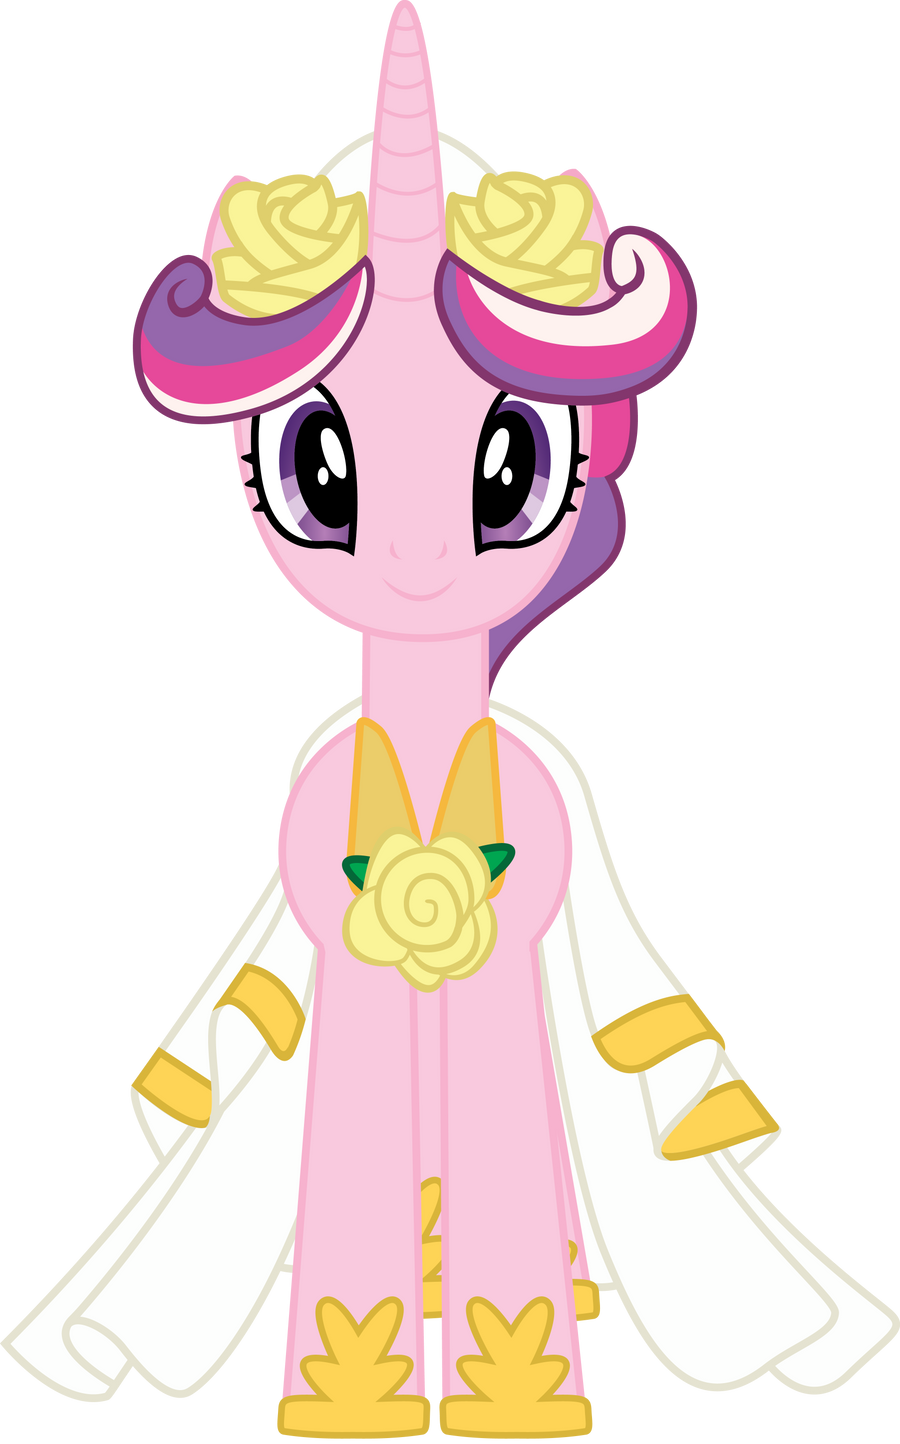 Princess cadence wedding gown by tecknojock on deviantart - Pictures of princess cadence ...